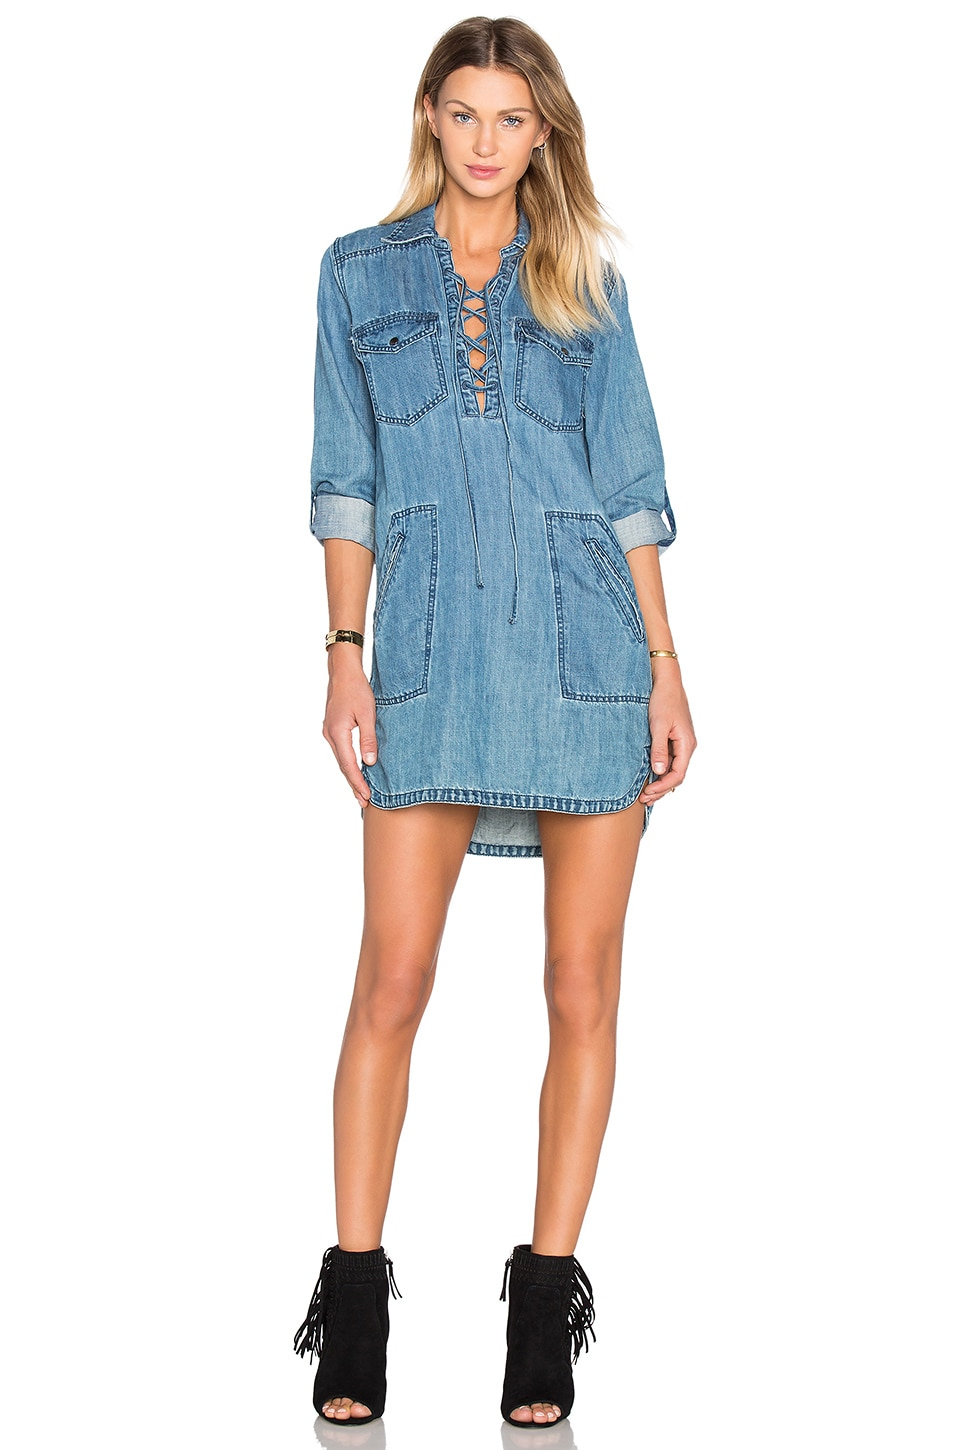 BLANKNYC Denim Mini Dress in Freak Out